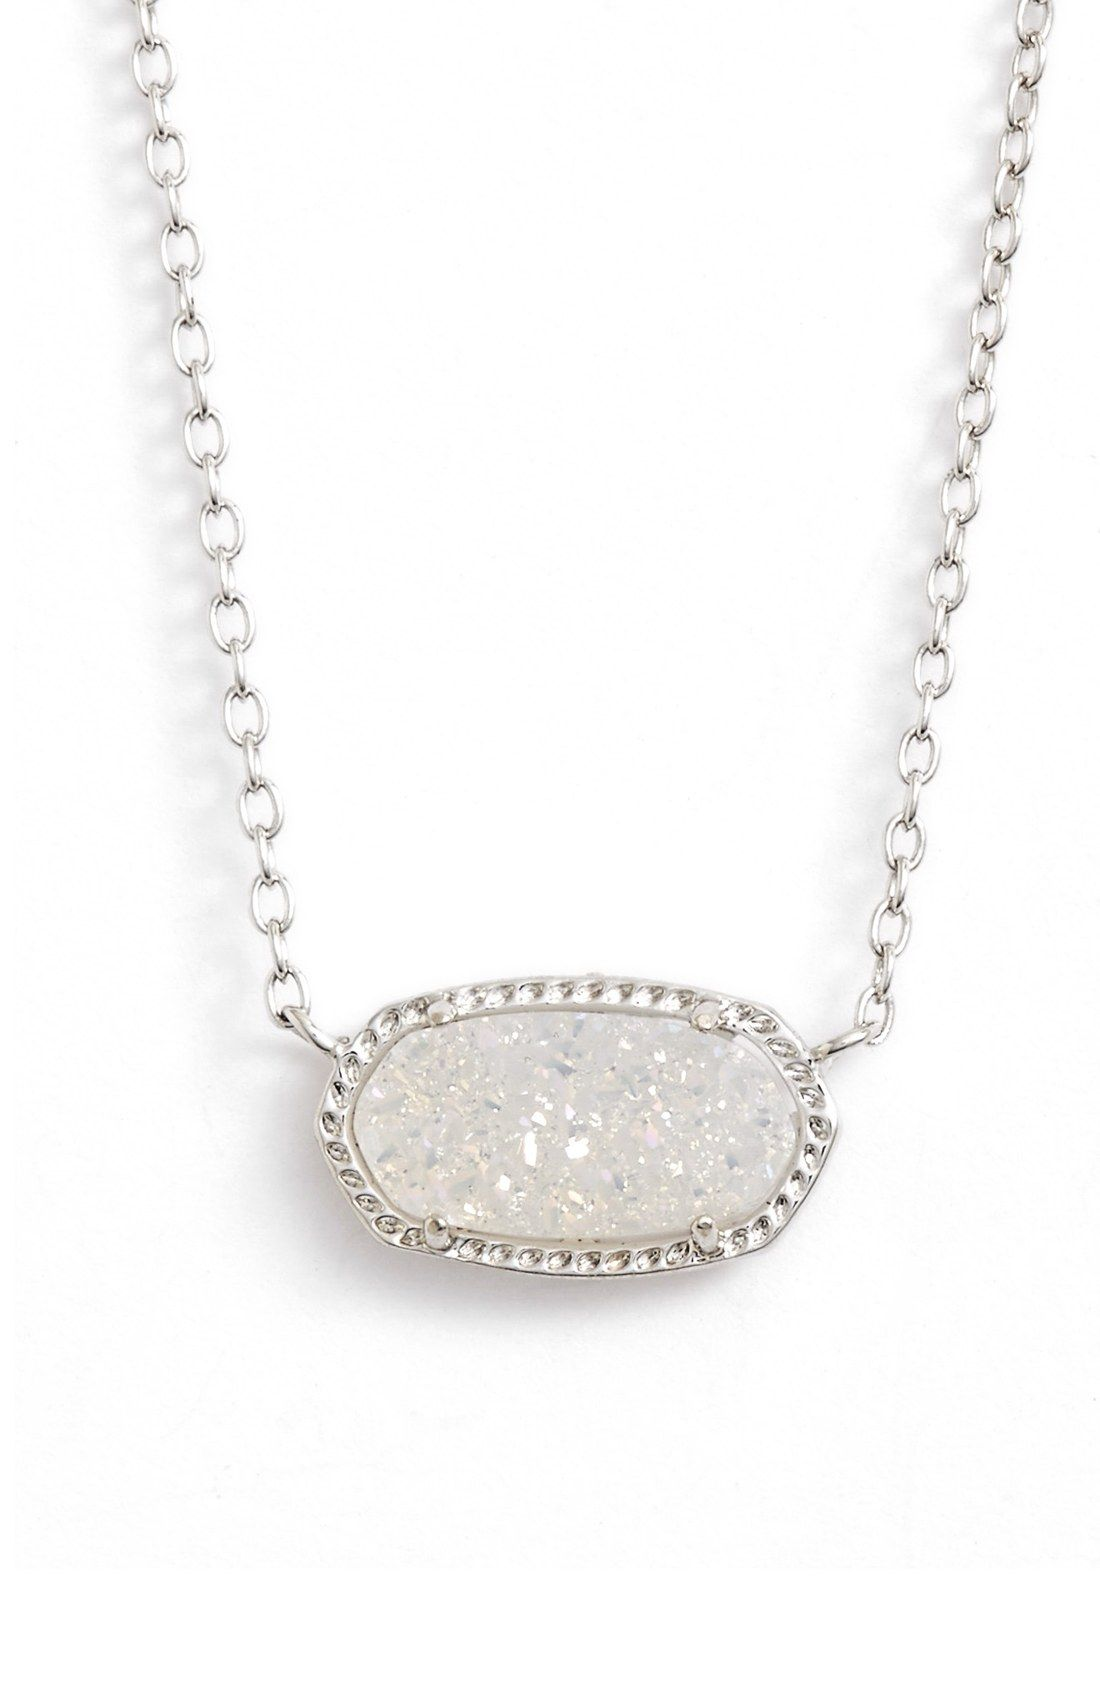 a gold the galleria pendant diamond in necklace kendra scott bridgete drusy iridescent shop